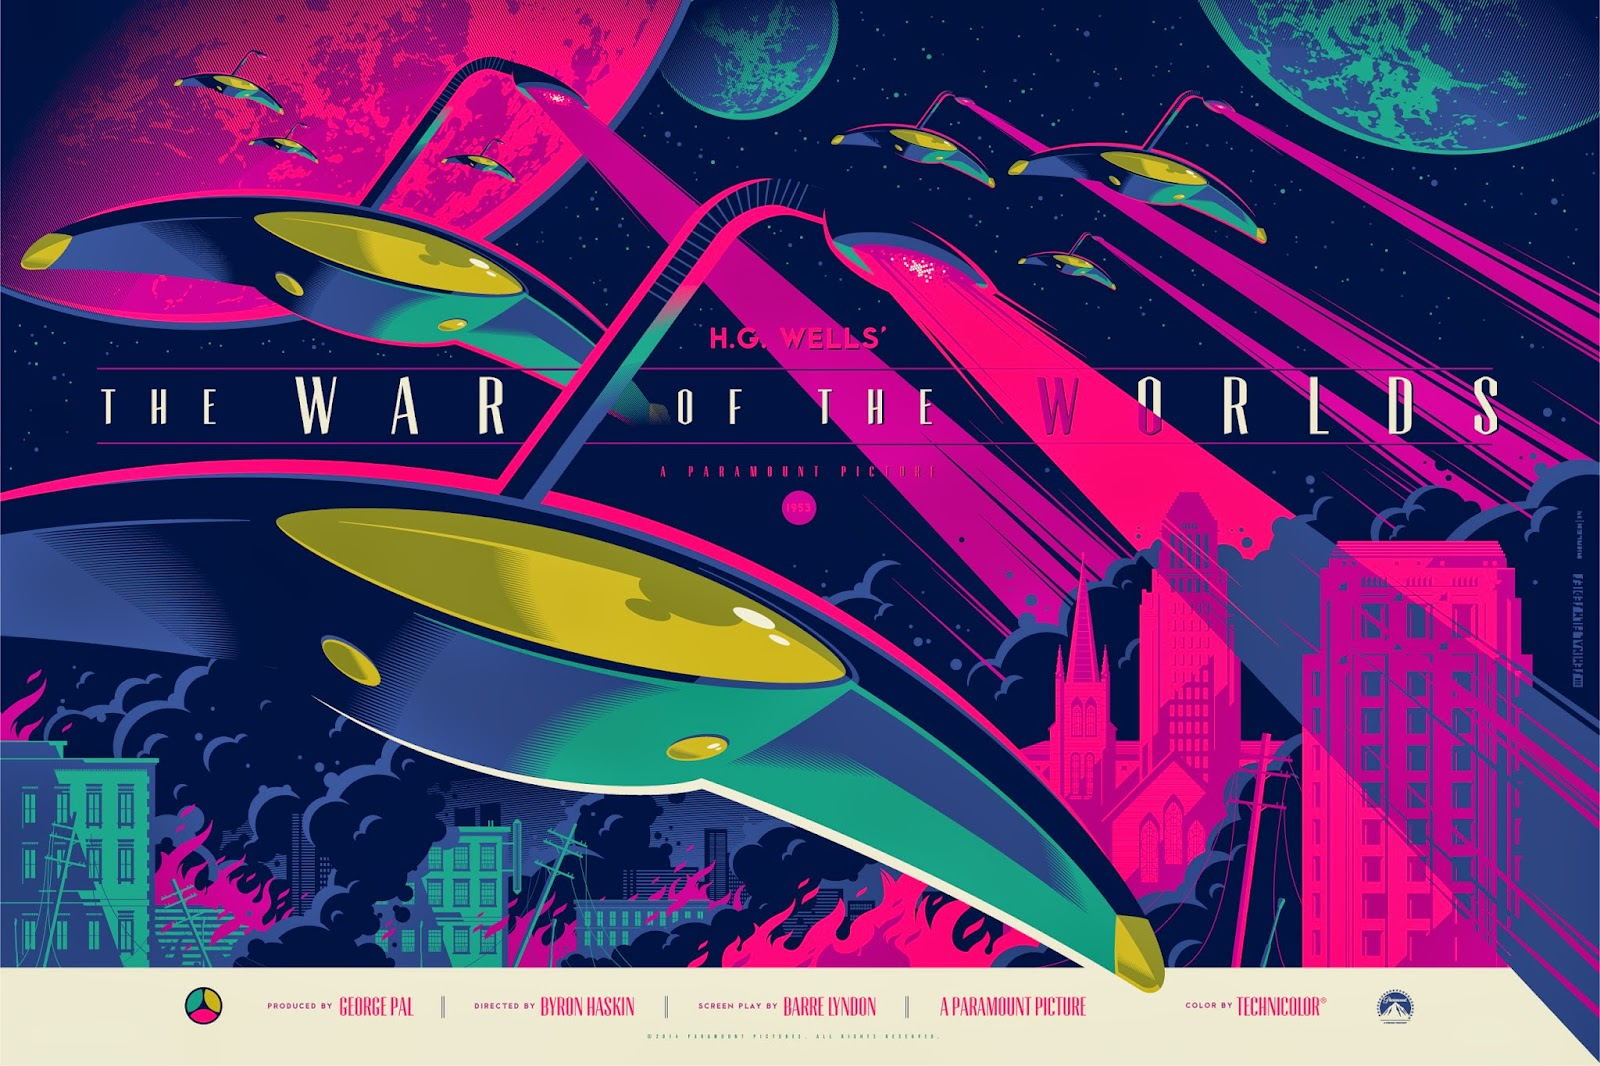 War-of-the-Worlds-Tom-Whalen-Poster-Variant